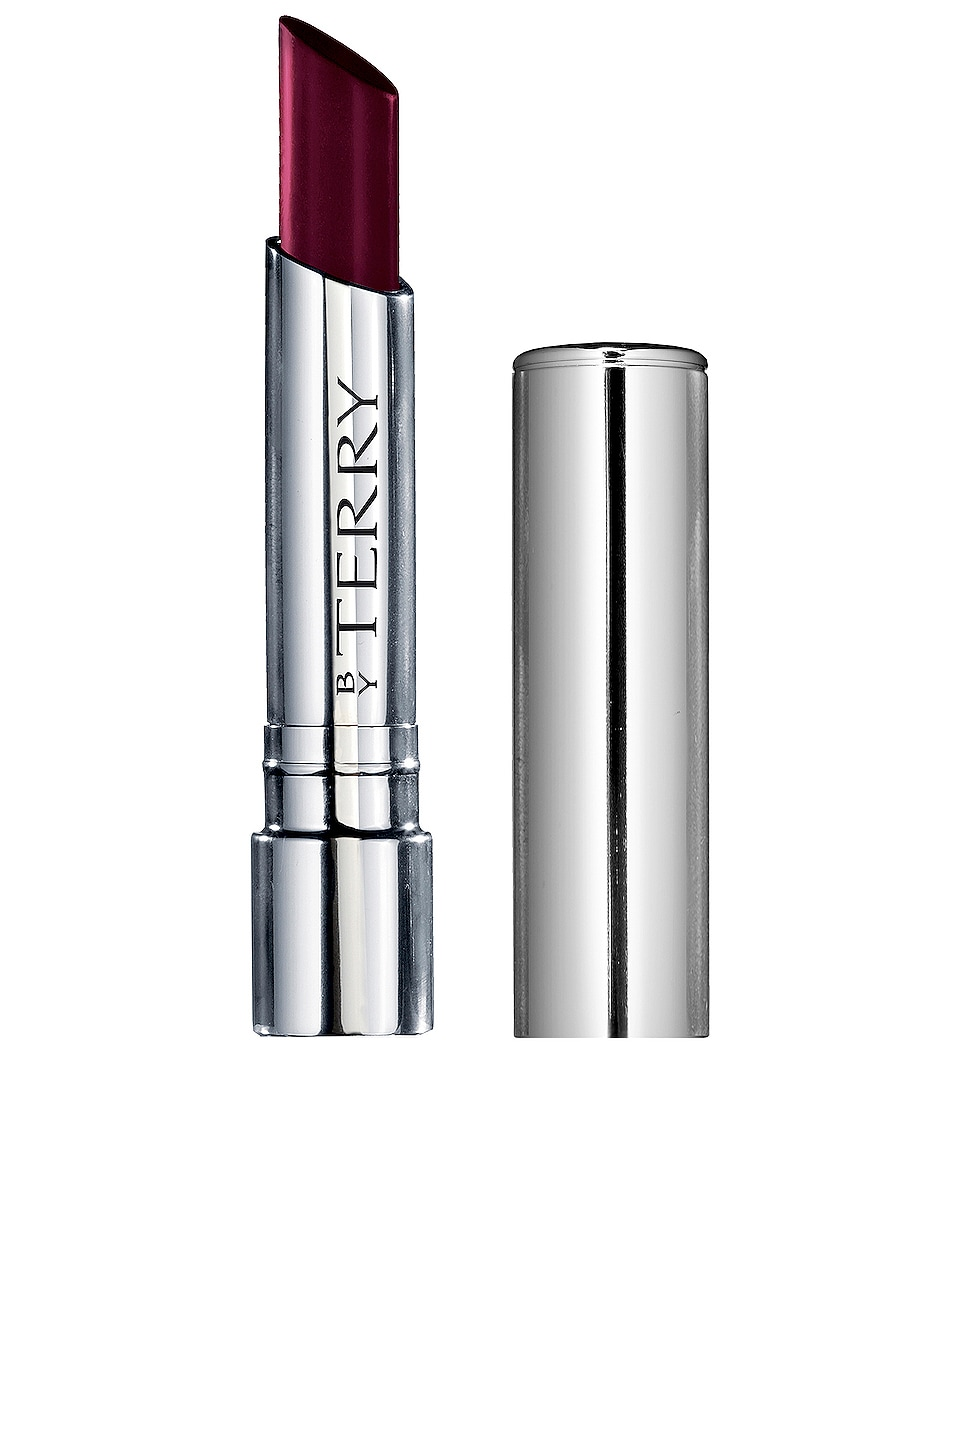 By Terry Hyaluronic Sheer Rouge Hydra-Balm Lipstick in Sangria Appeal